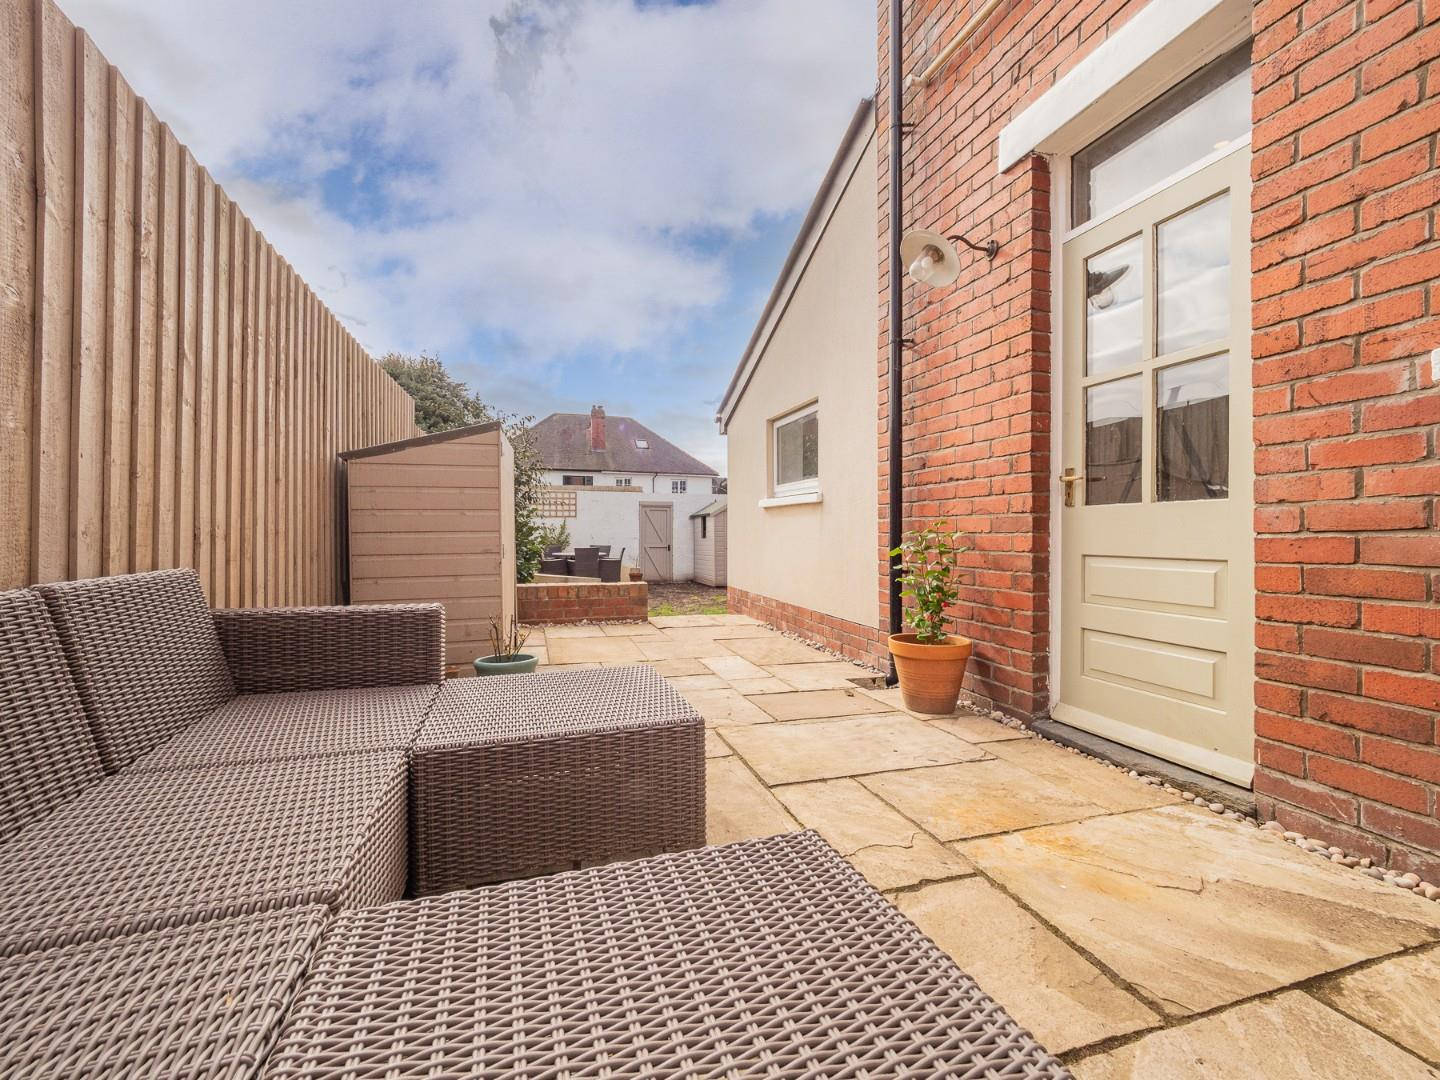 4 bed terraced house for sale in Southminster Road, Cardiff  - Property Image 10